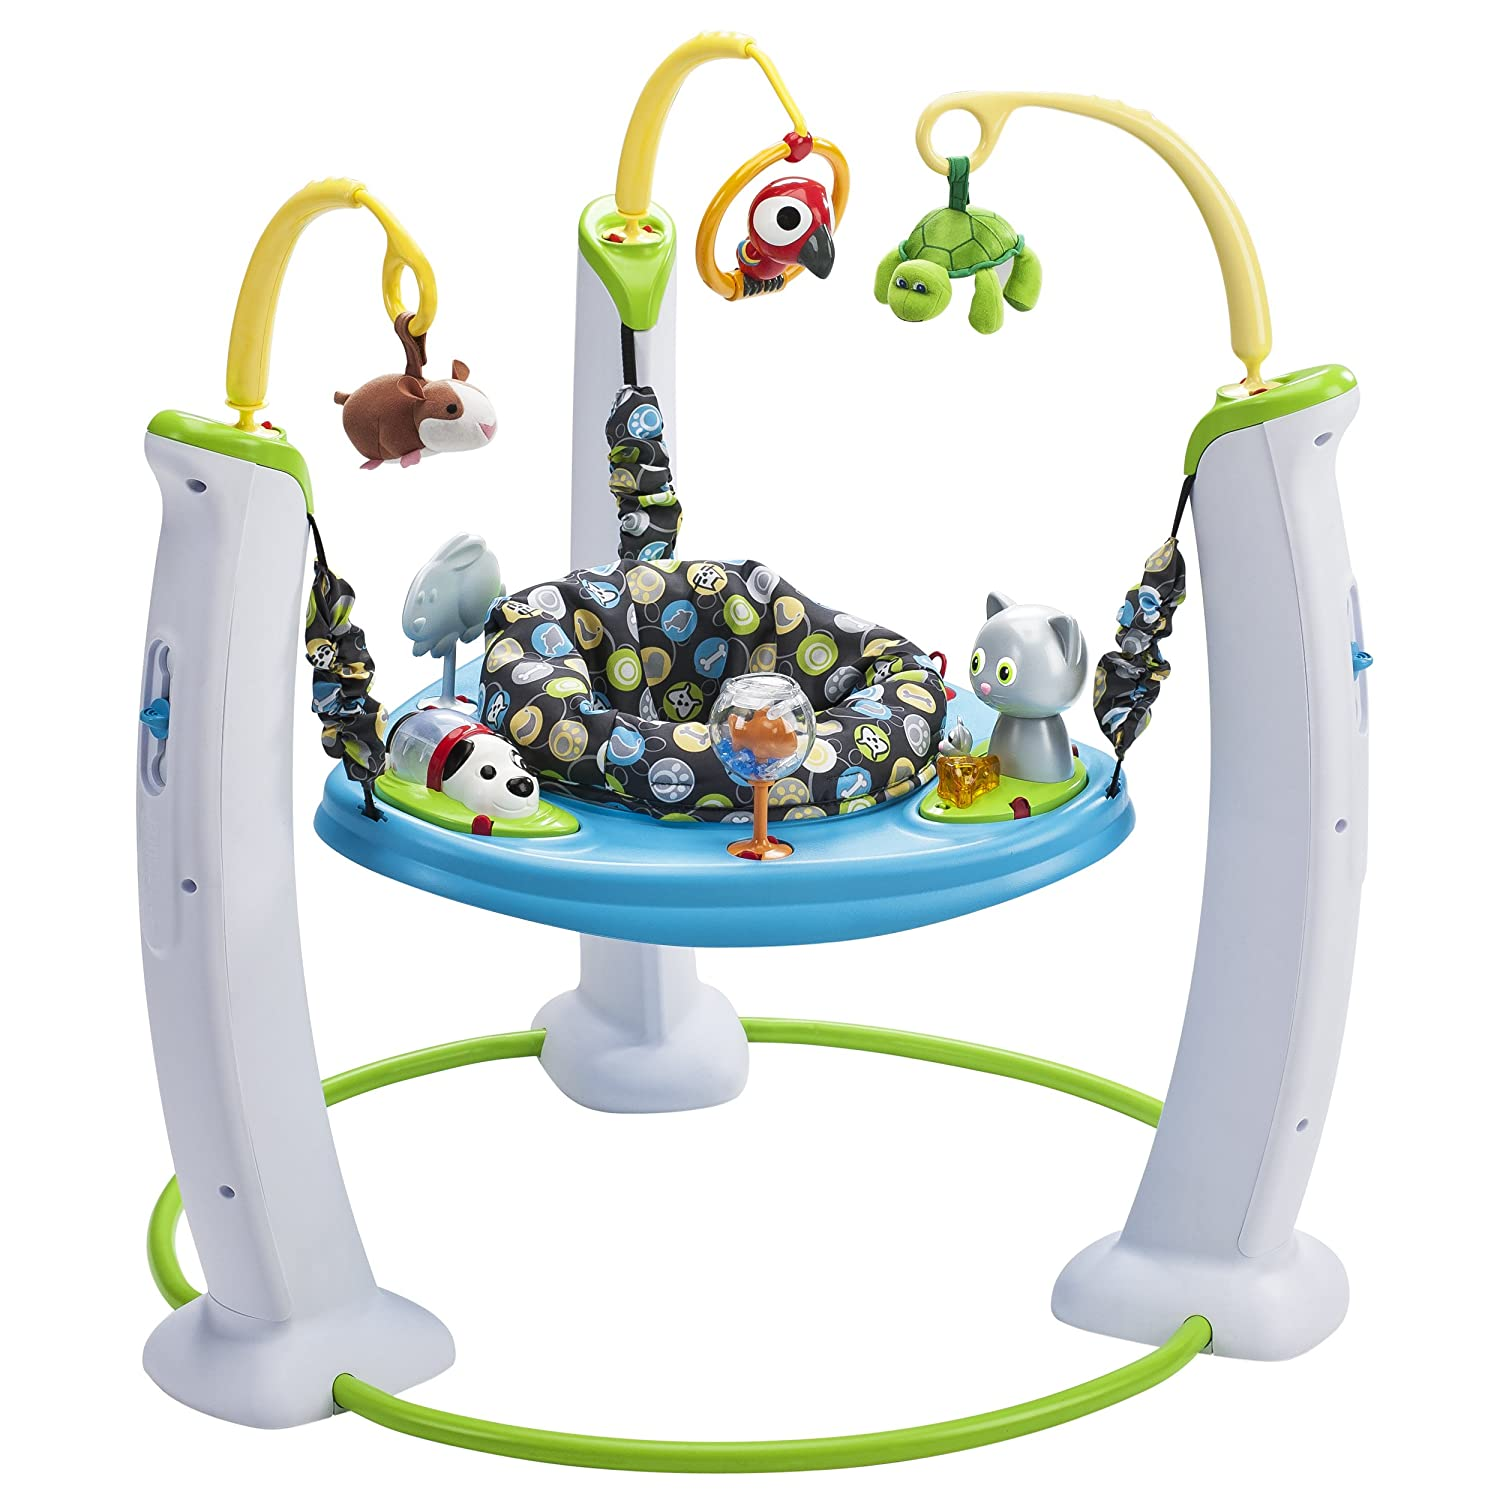 evenflo exersaucer jump and learn activity centre my first pet  - evenflo exersaucer jump and learn activity centre my first petamazoncouk baby